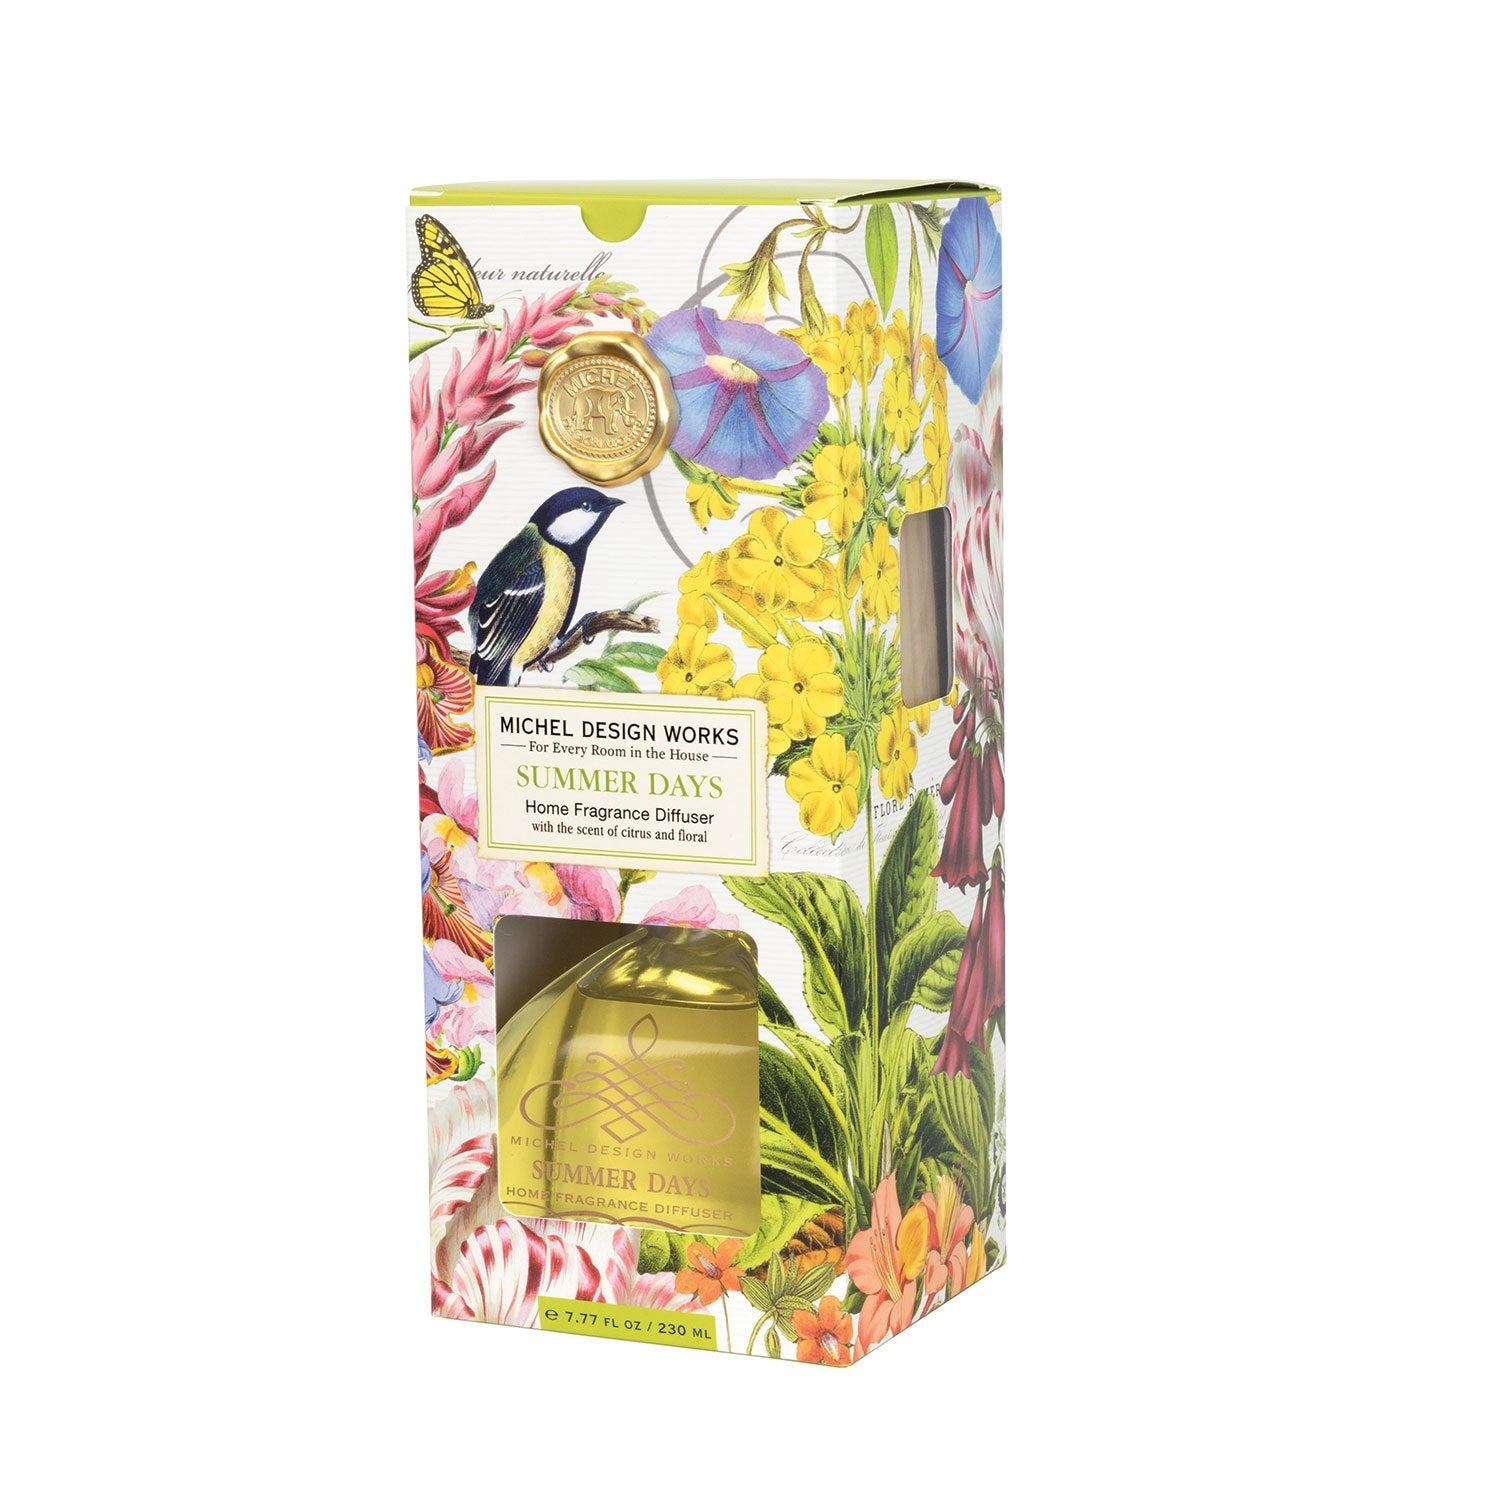 Summer Days Home Fragrance Diffuser